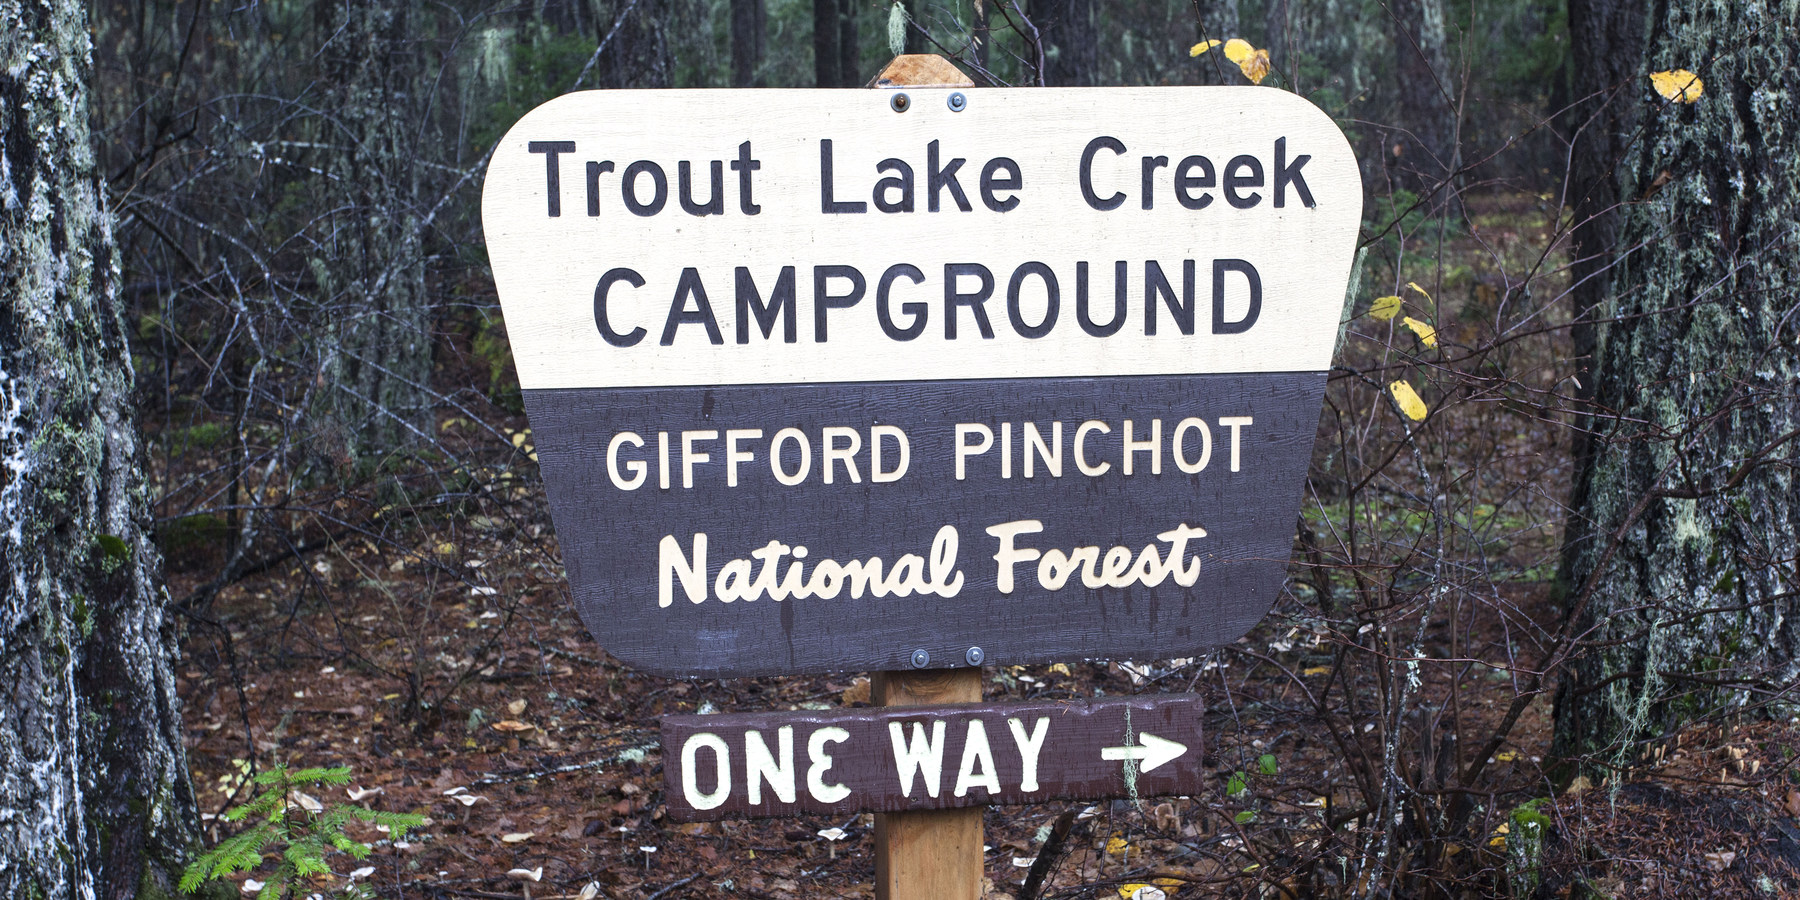 Trout Lake Creek Campground Outdoor Project